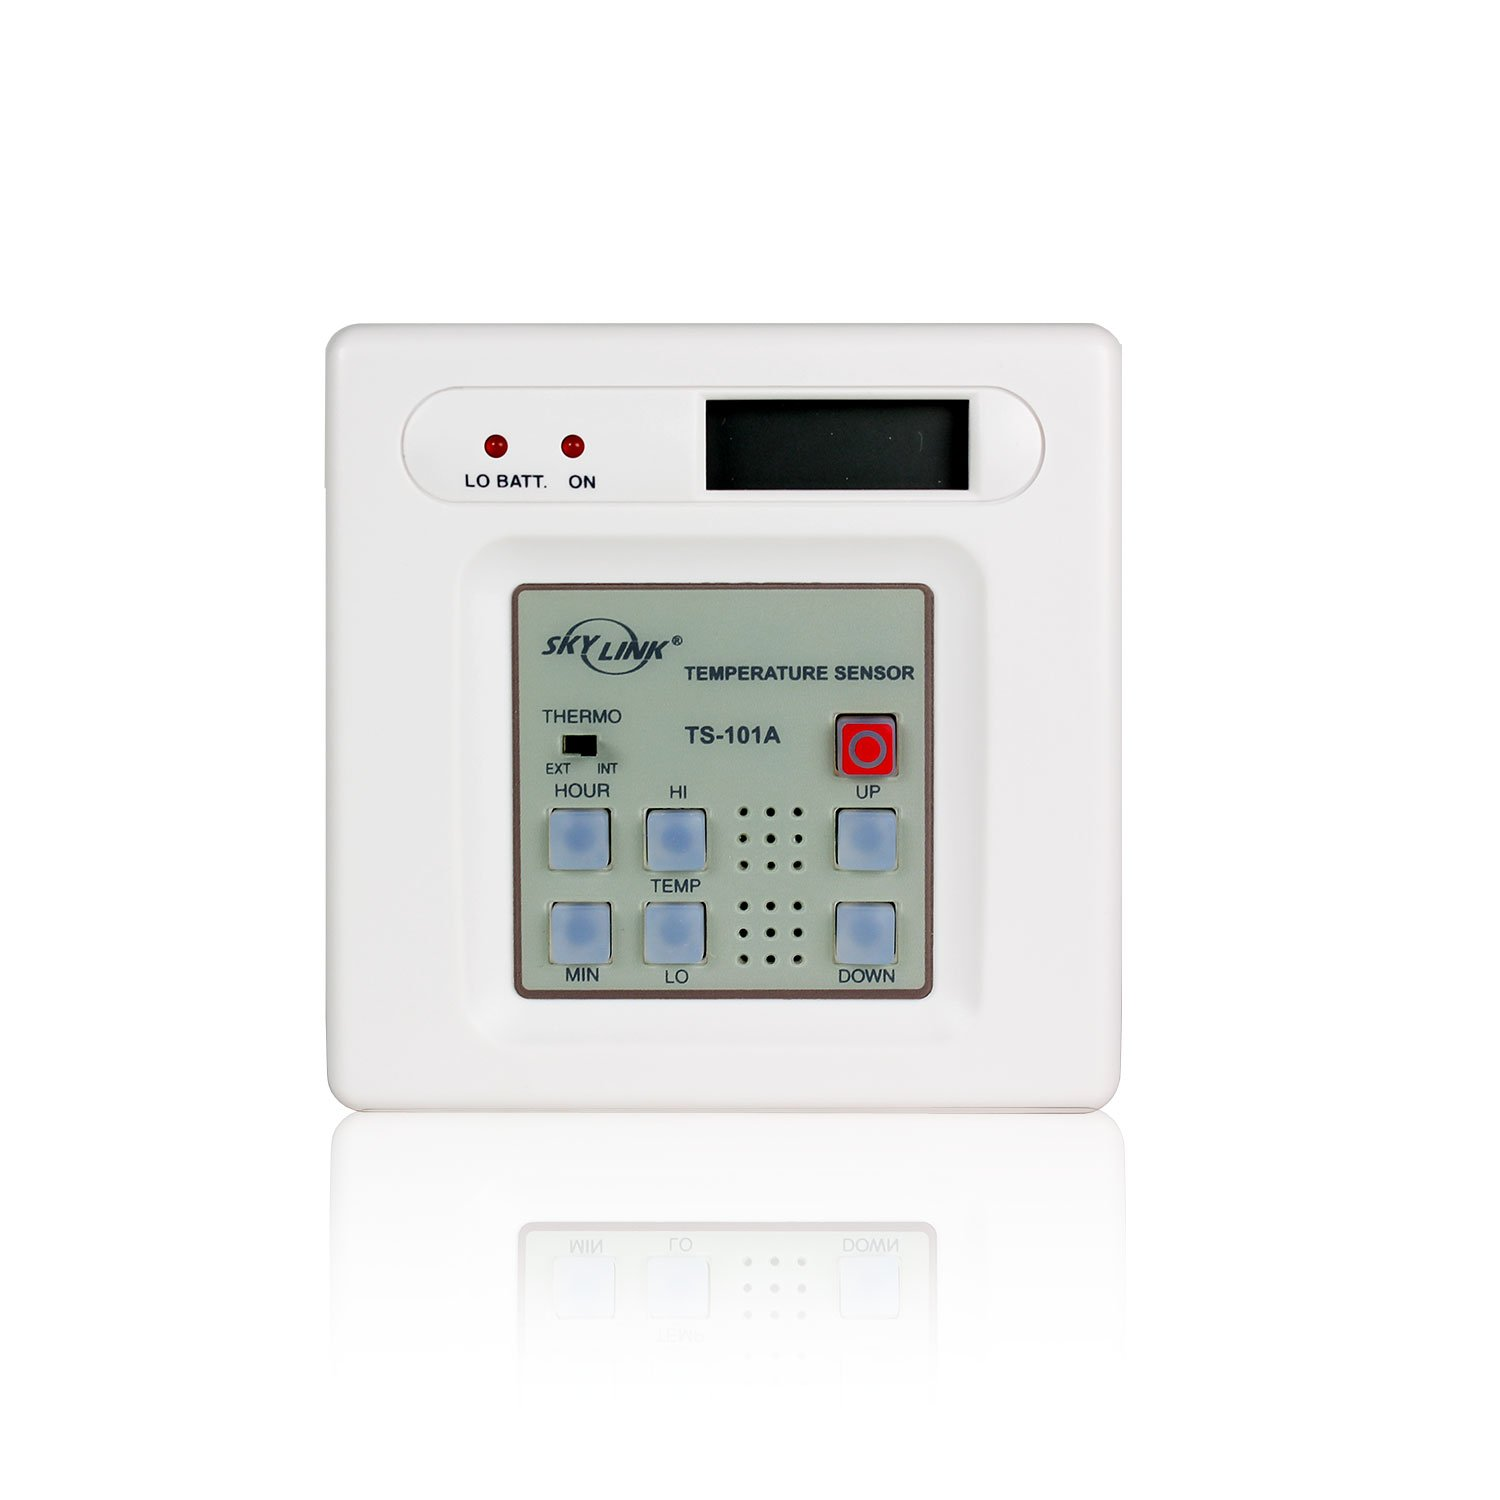 Skylink TS-101W Wireless Temperature Monitor Alert Security Safety Protection Sensor | Affordable, Easy to Install DIY Accessory for SC Series Systems